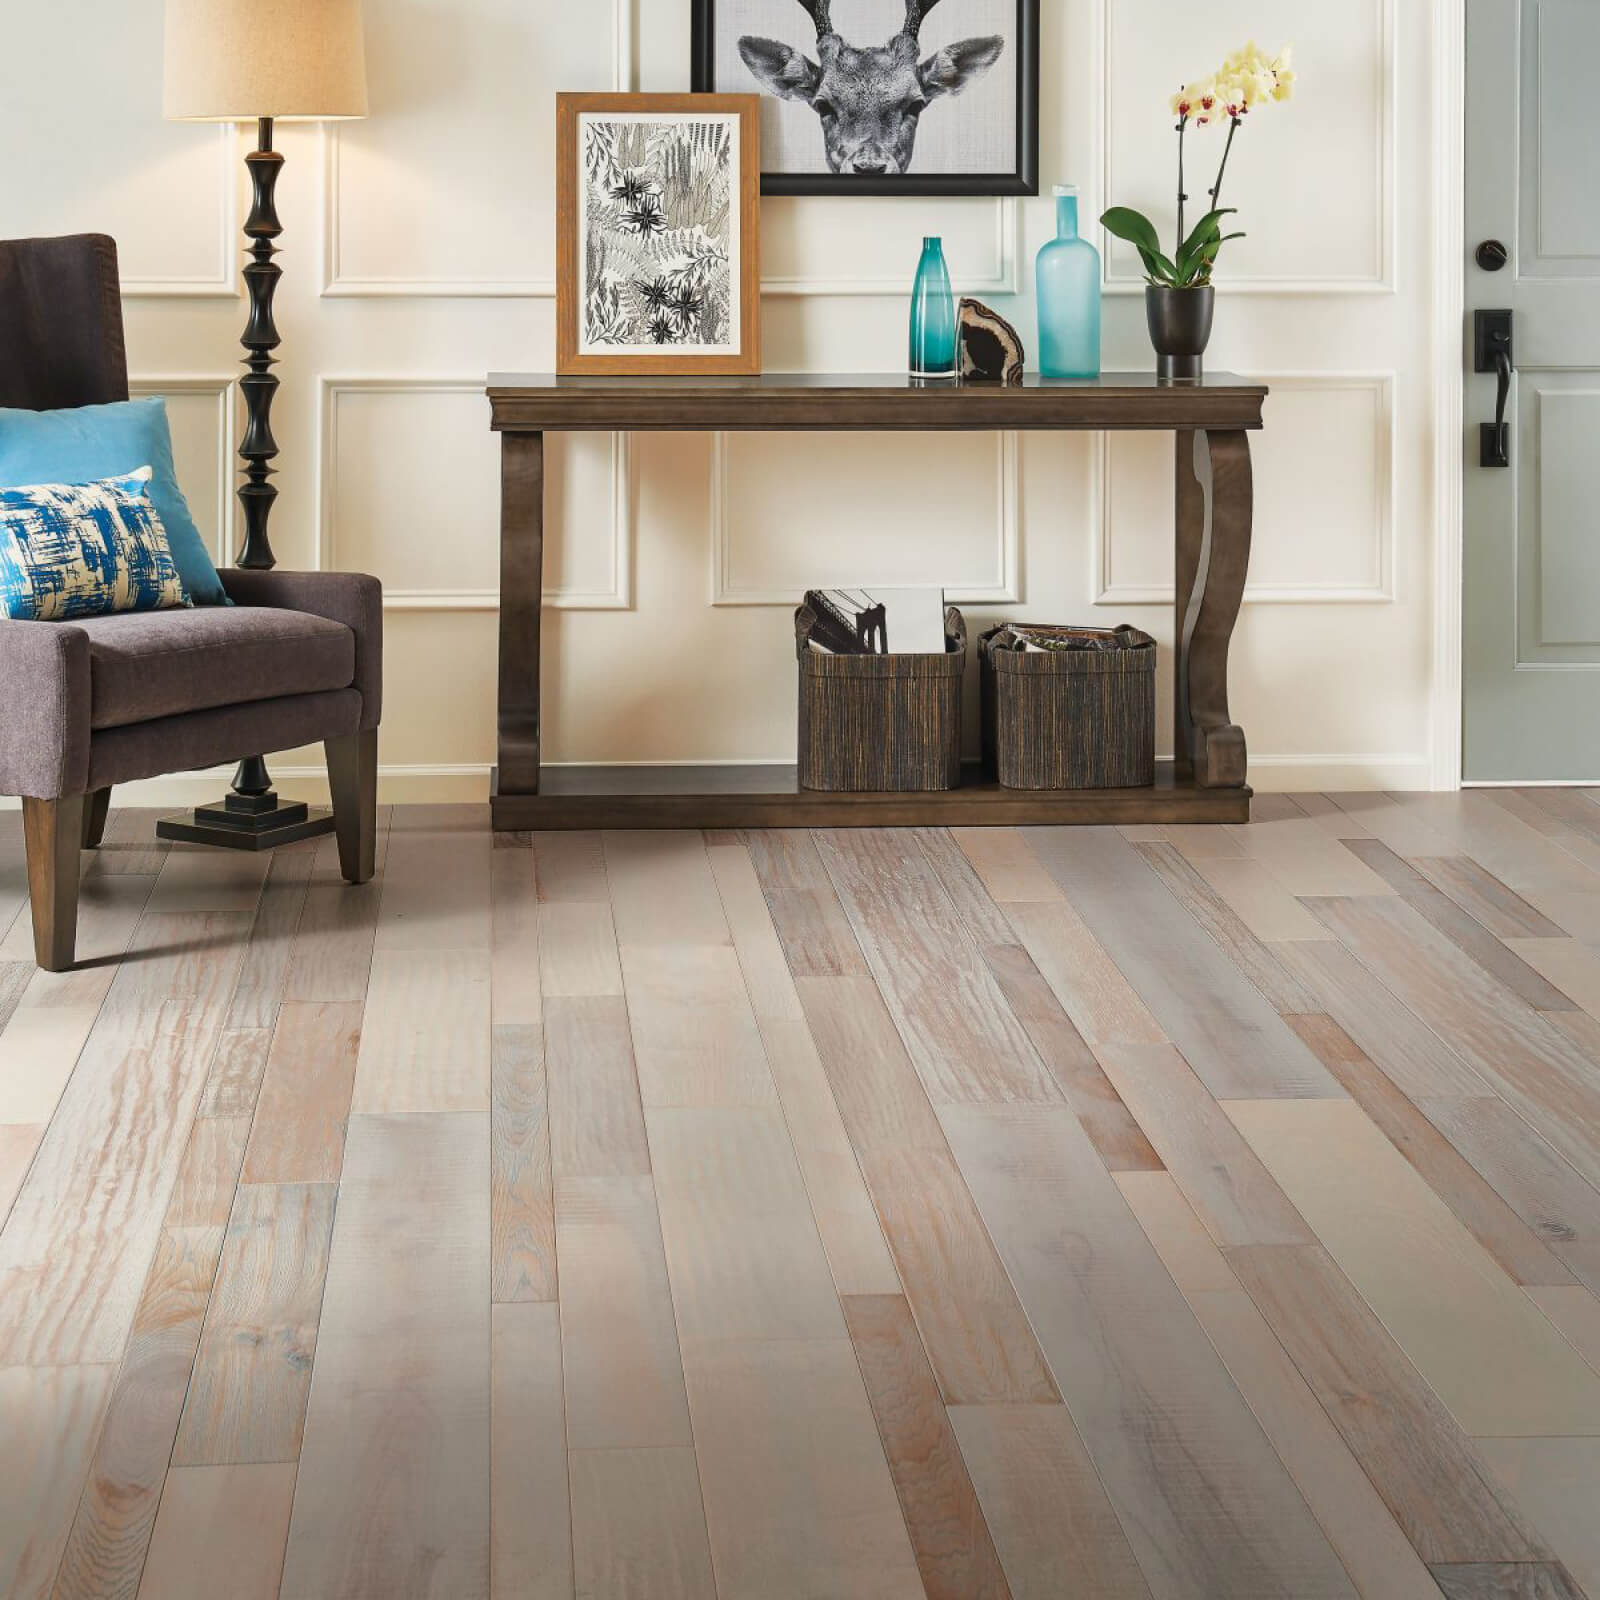 Summer Flooring Trends for 2020 | Wacky's Flooring